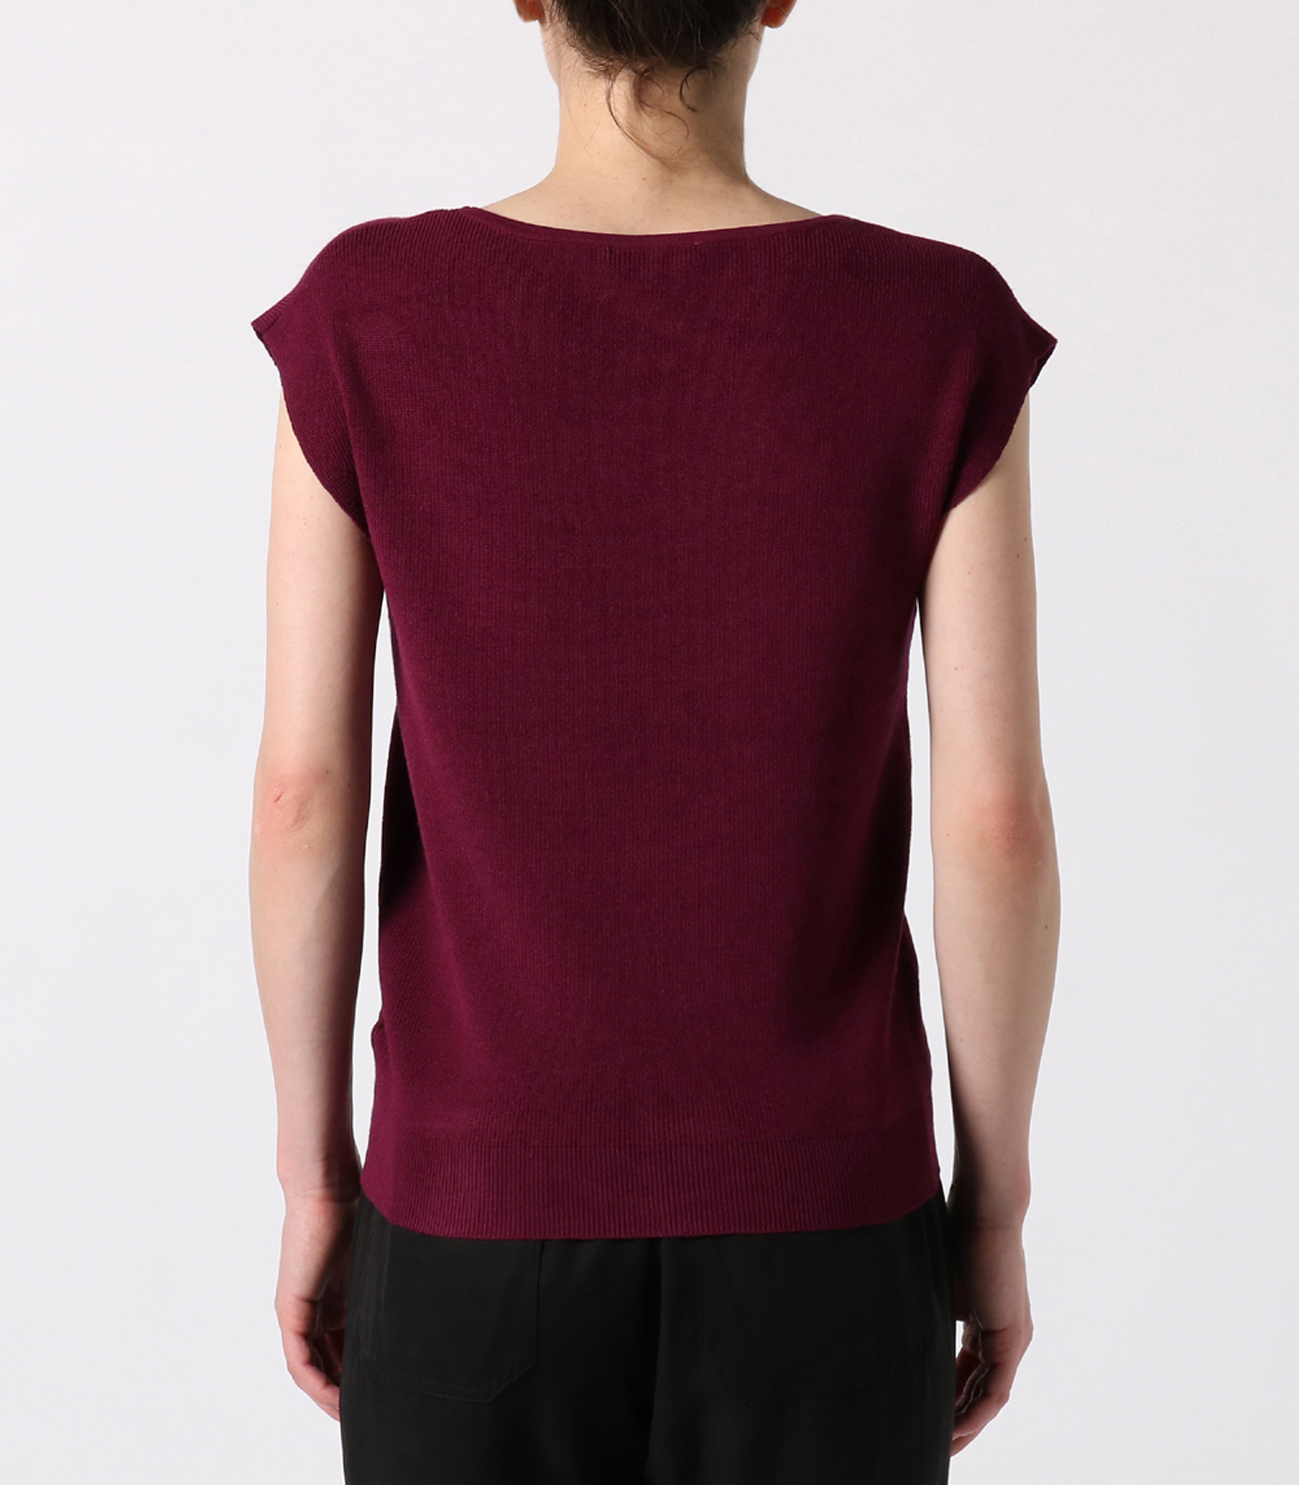 outlast sweater sleeveless vneck 詳細画像 purple 4